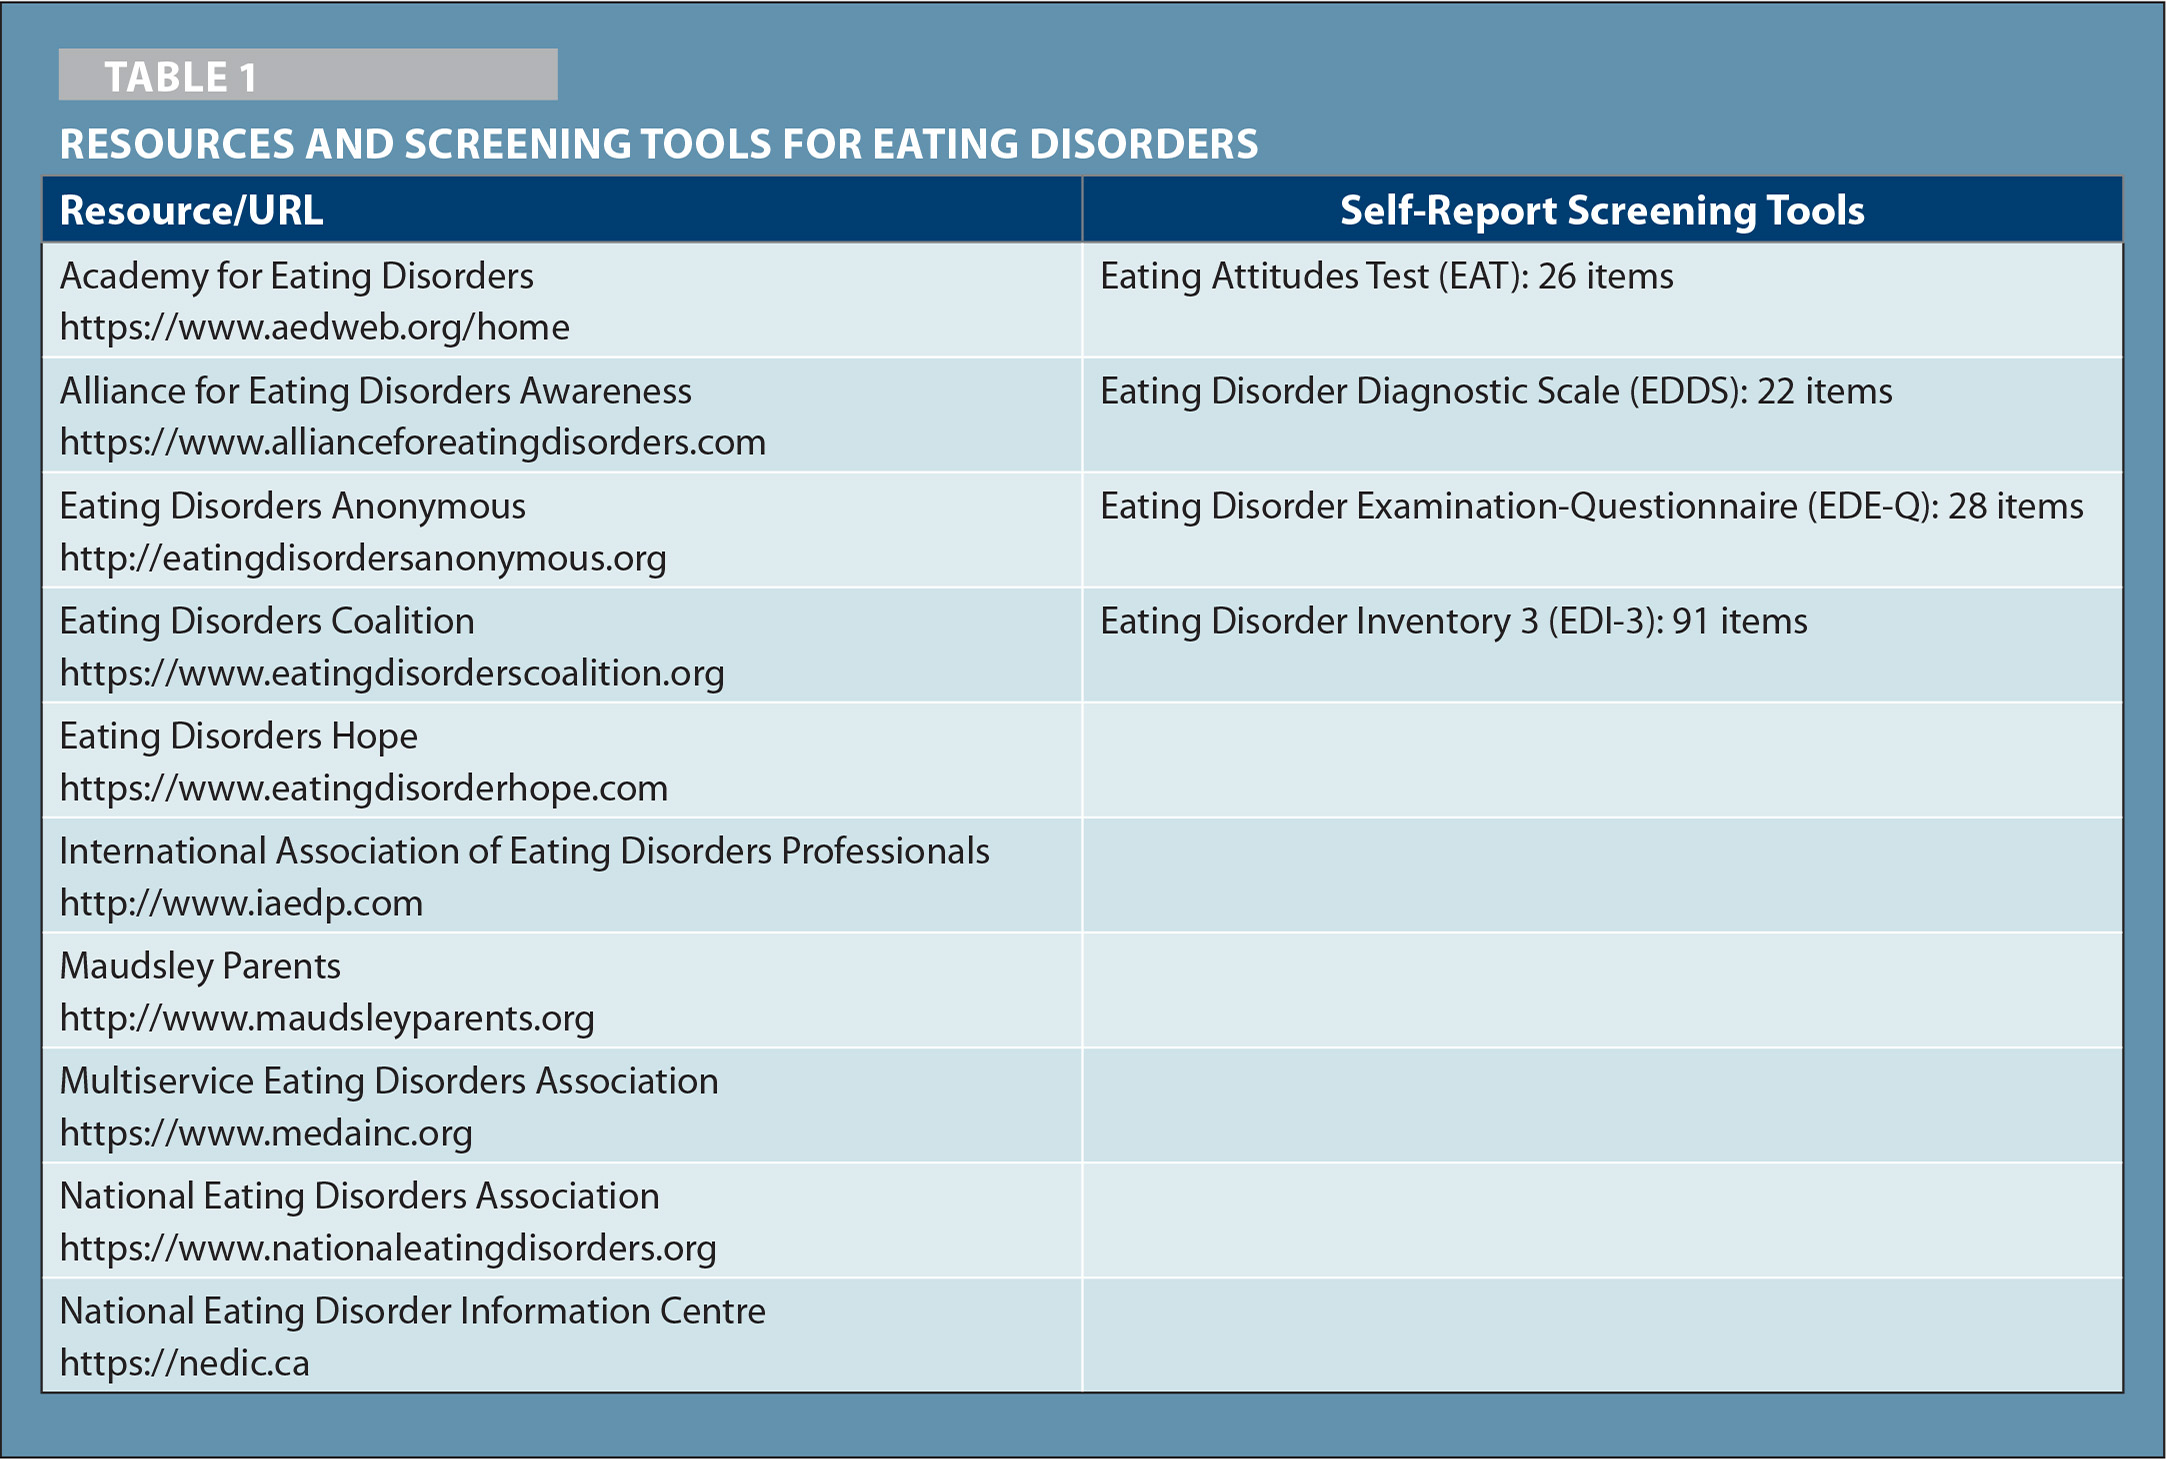 Resources and Screening Tools for Eating Disorders